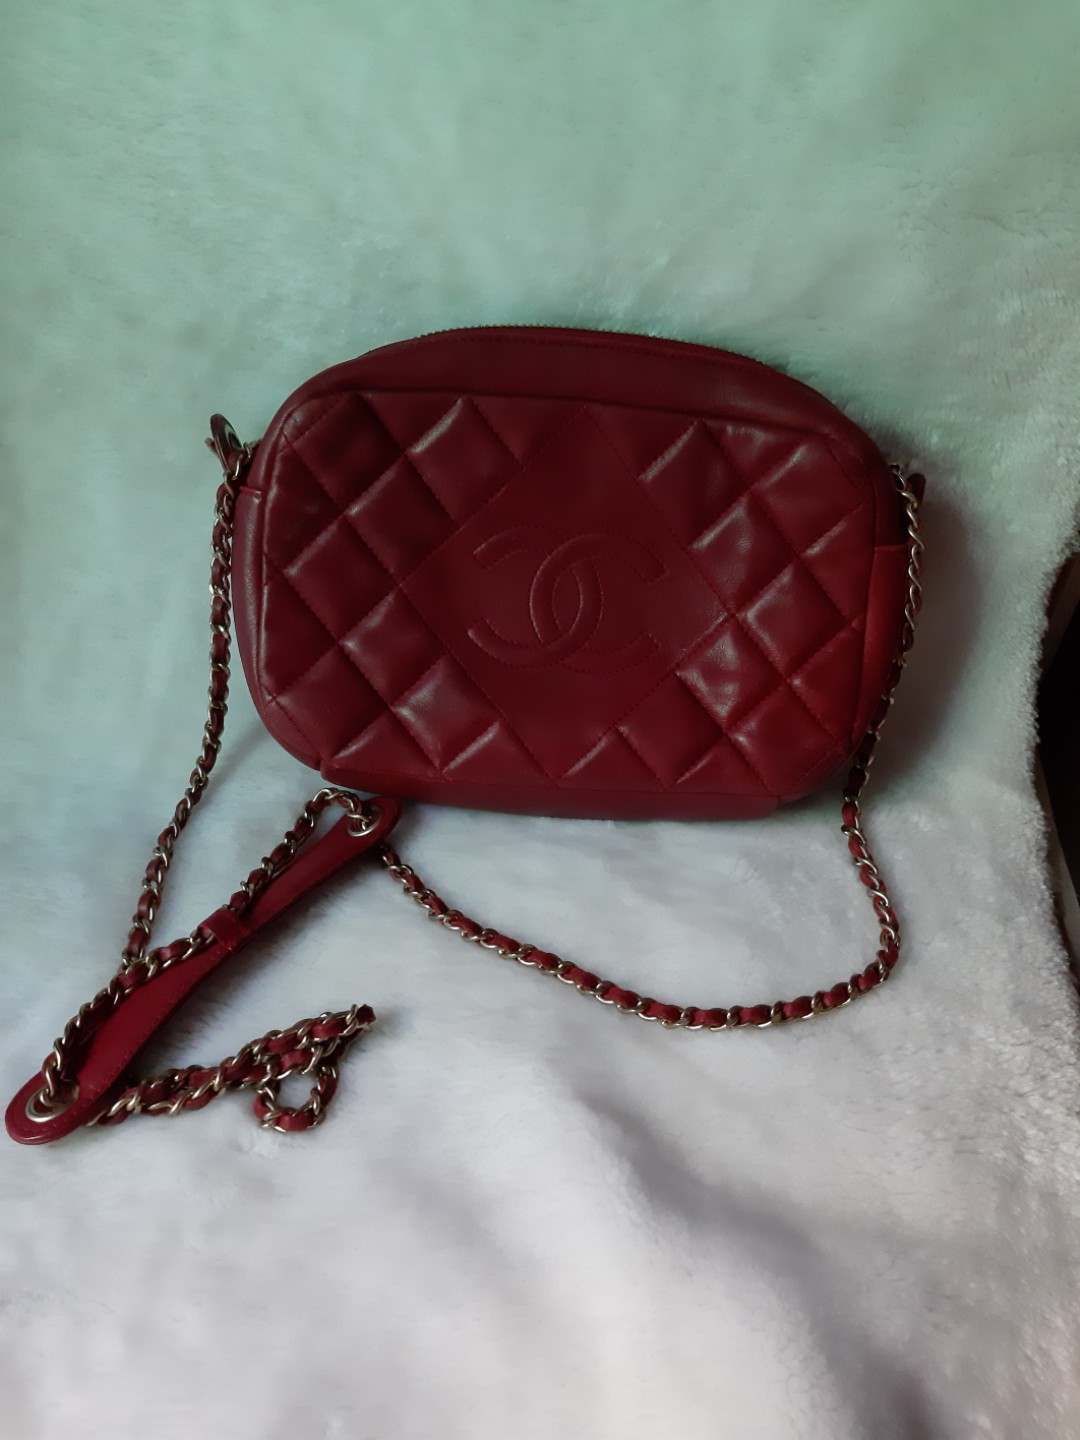 efdd9792466236 Chanel Quilted Soft Leather Lambskin Bag Women S Fashion Bags